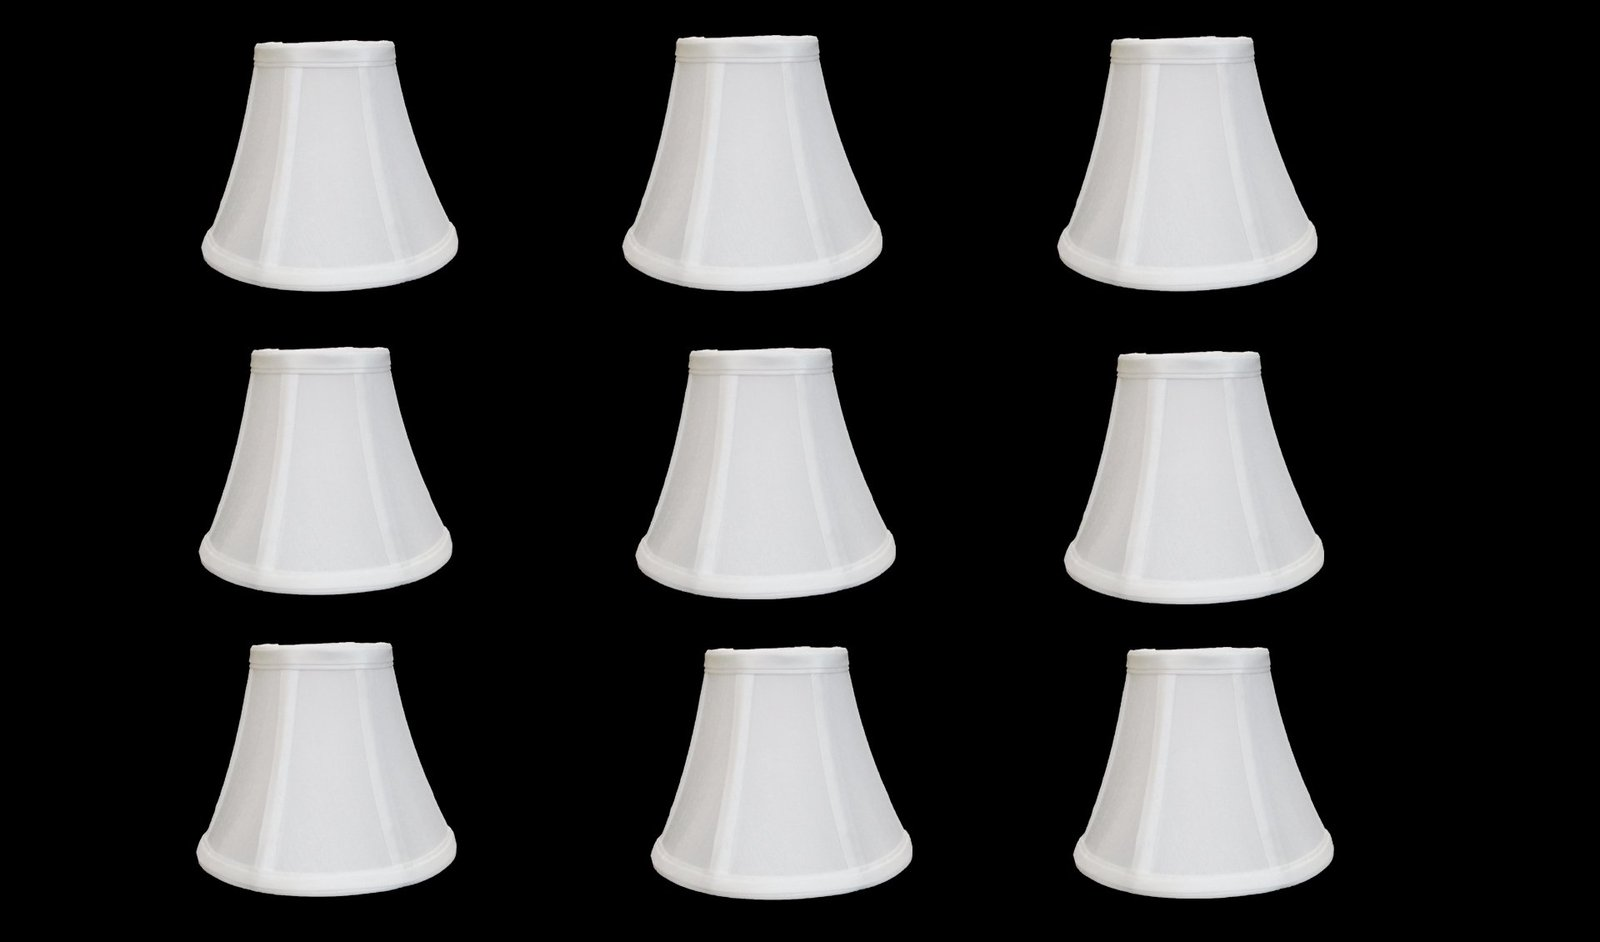 chandelier lamp shades set of 9 soft bell 3 x 6 x 5 whi. Black Bedroom Furniture Sets. Home Design Ideas